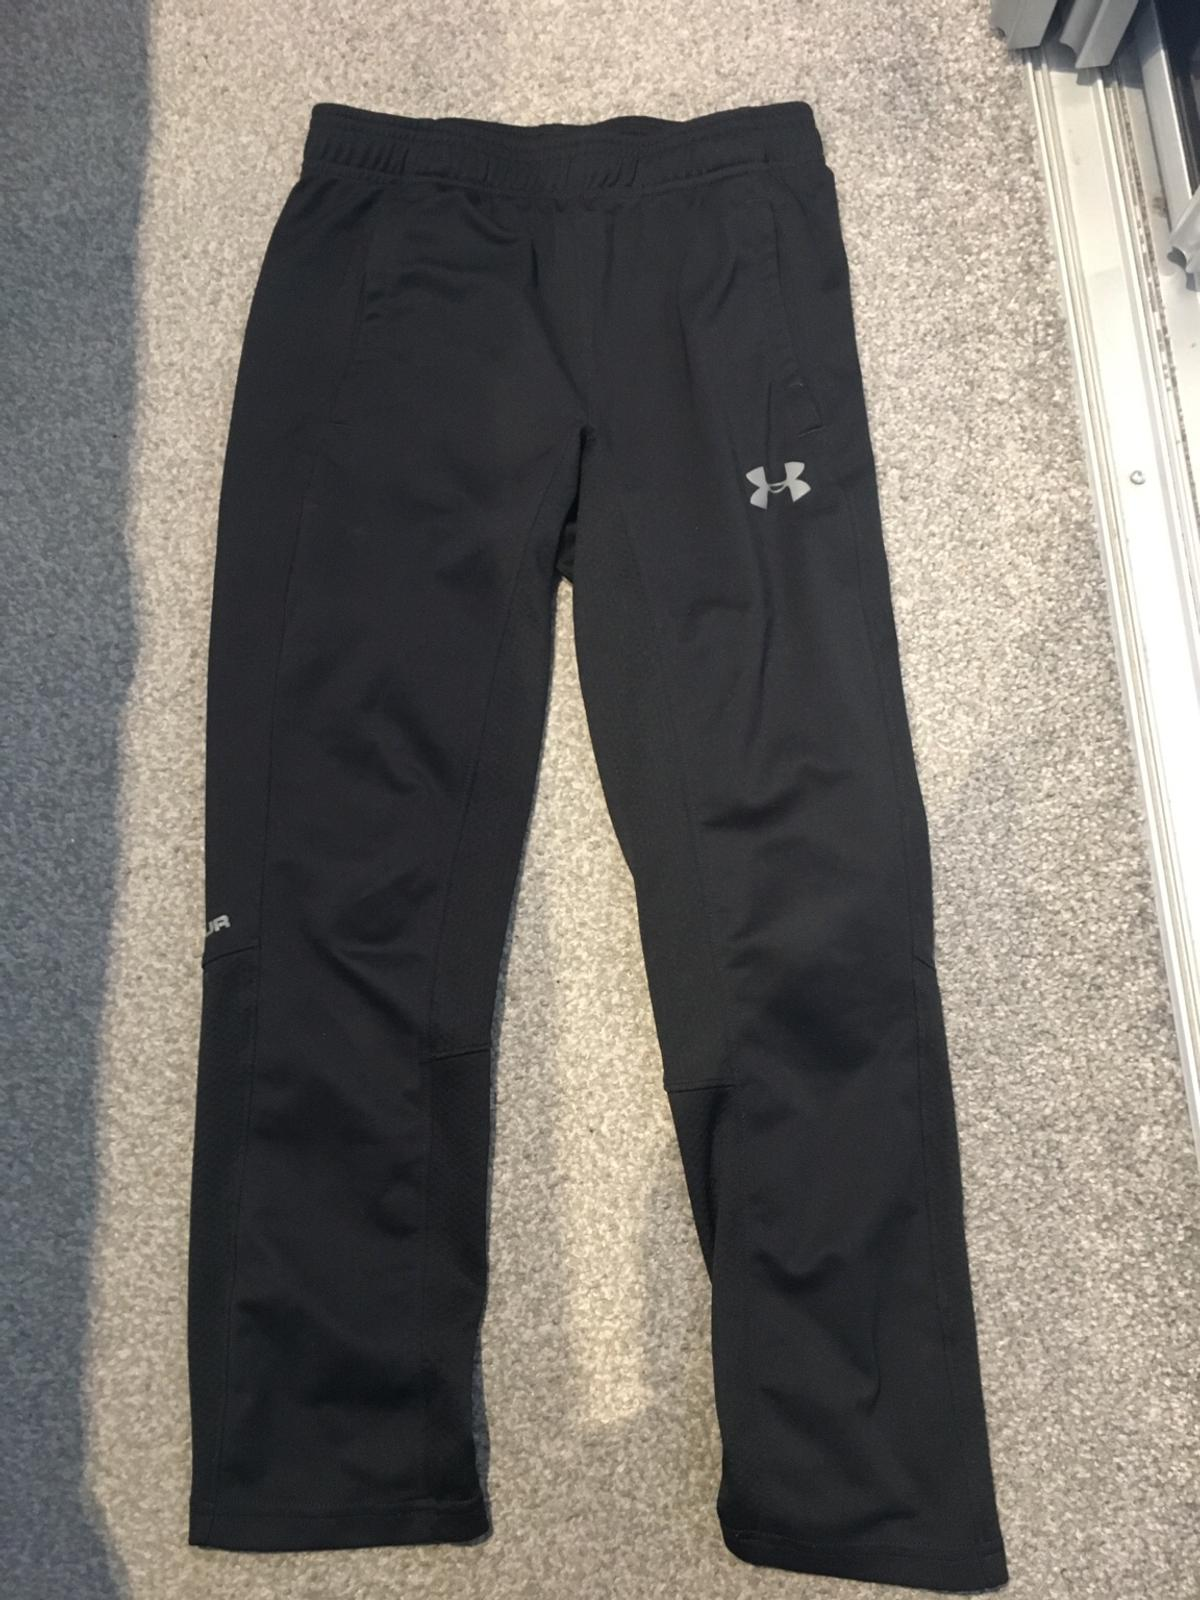 ebd81595026745 Under Armour Tracksuit bottoms in BA14 Bradley for £4.00 for sale ...